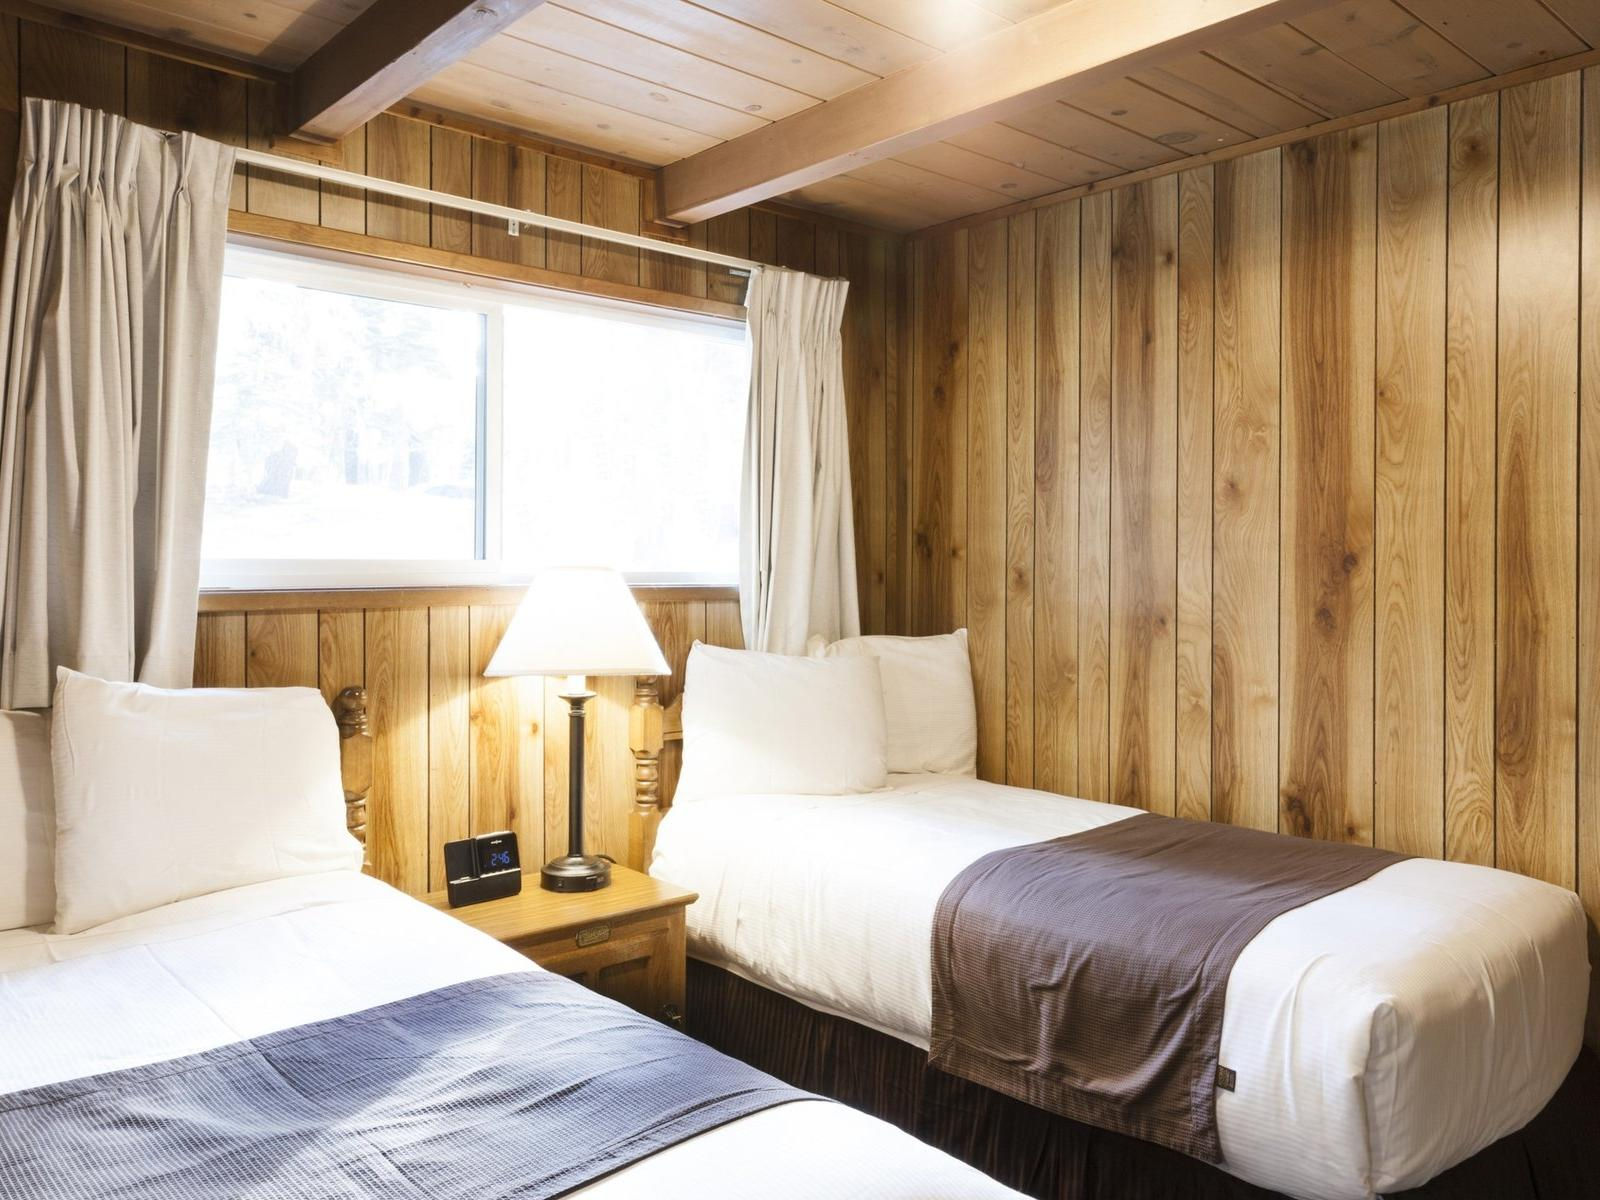 room with two twin beds and nighstand near window